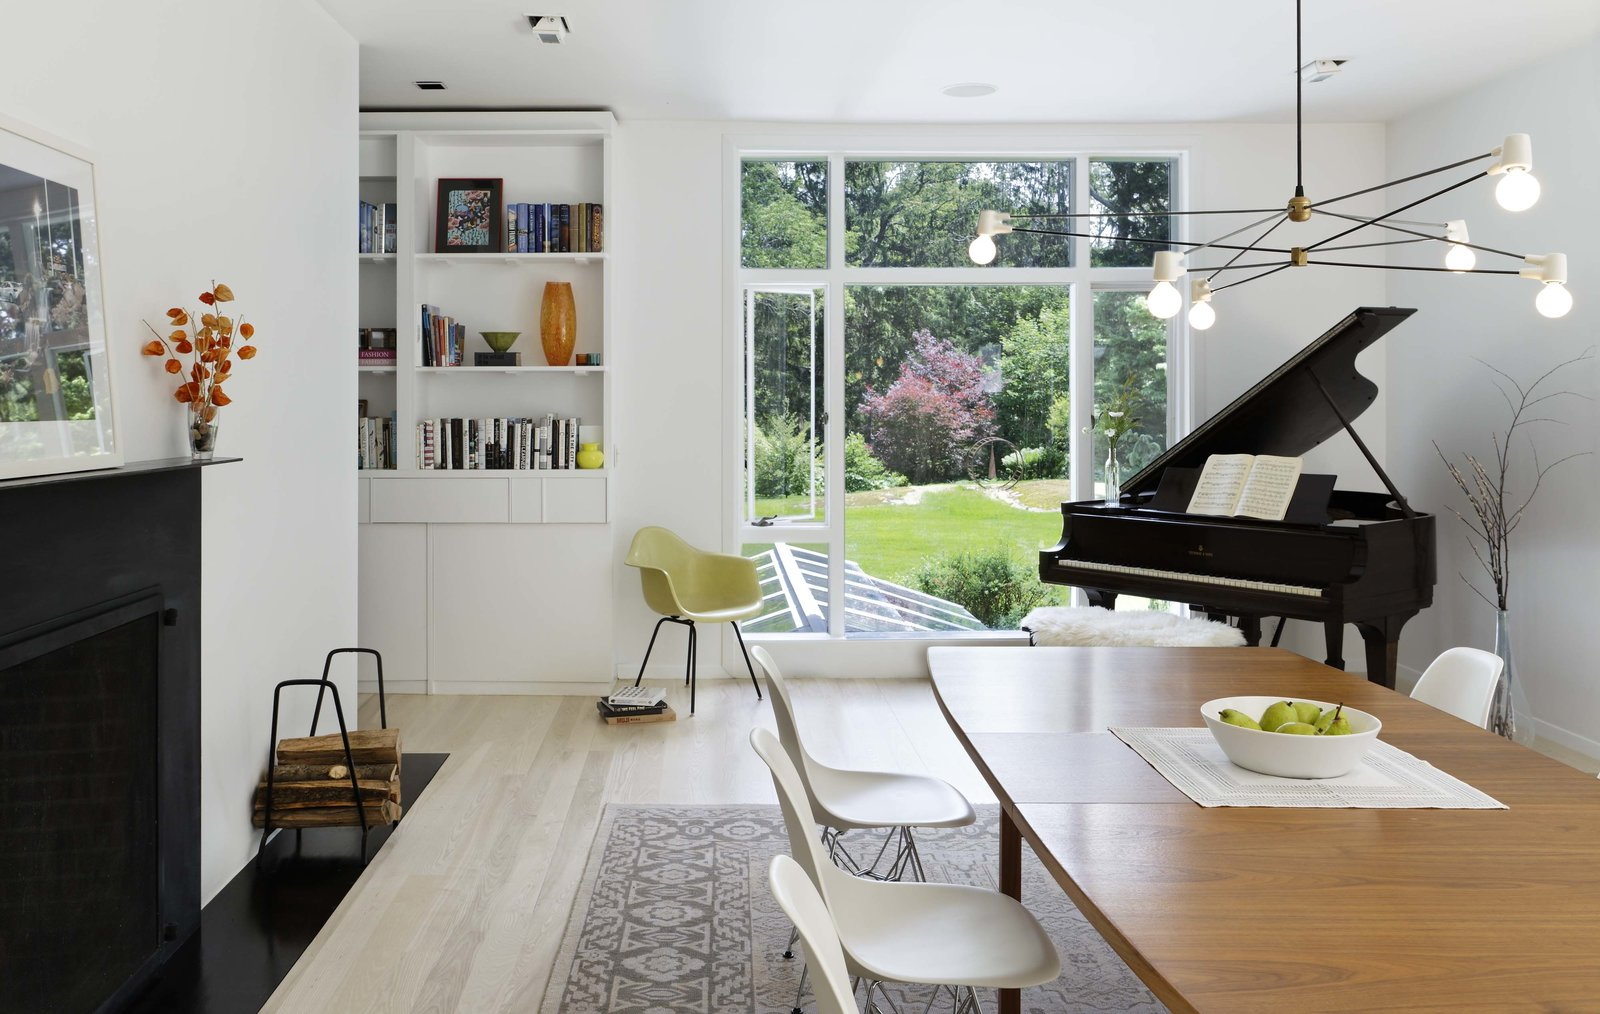 """Dining Room, Chair, Shelves, Table, Standard Layout Fireplace, and Pendant Lighting The """"sculptural"""" kitchen was replaced with a new open-plan cooking space, where concrete countertops are paired with glossy white cabinets and large windows frame views of the landscape.  Modern Barns by Aamodt / Plumb"""